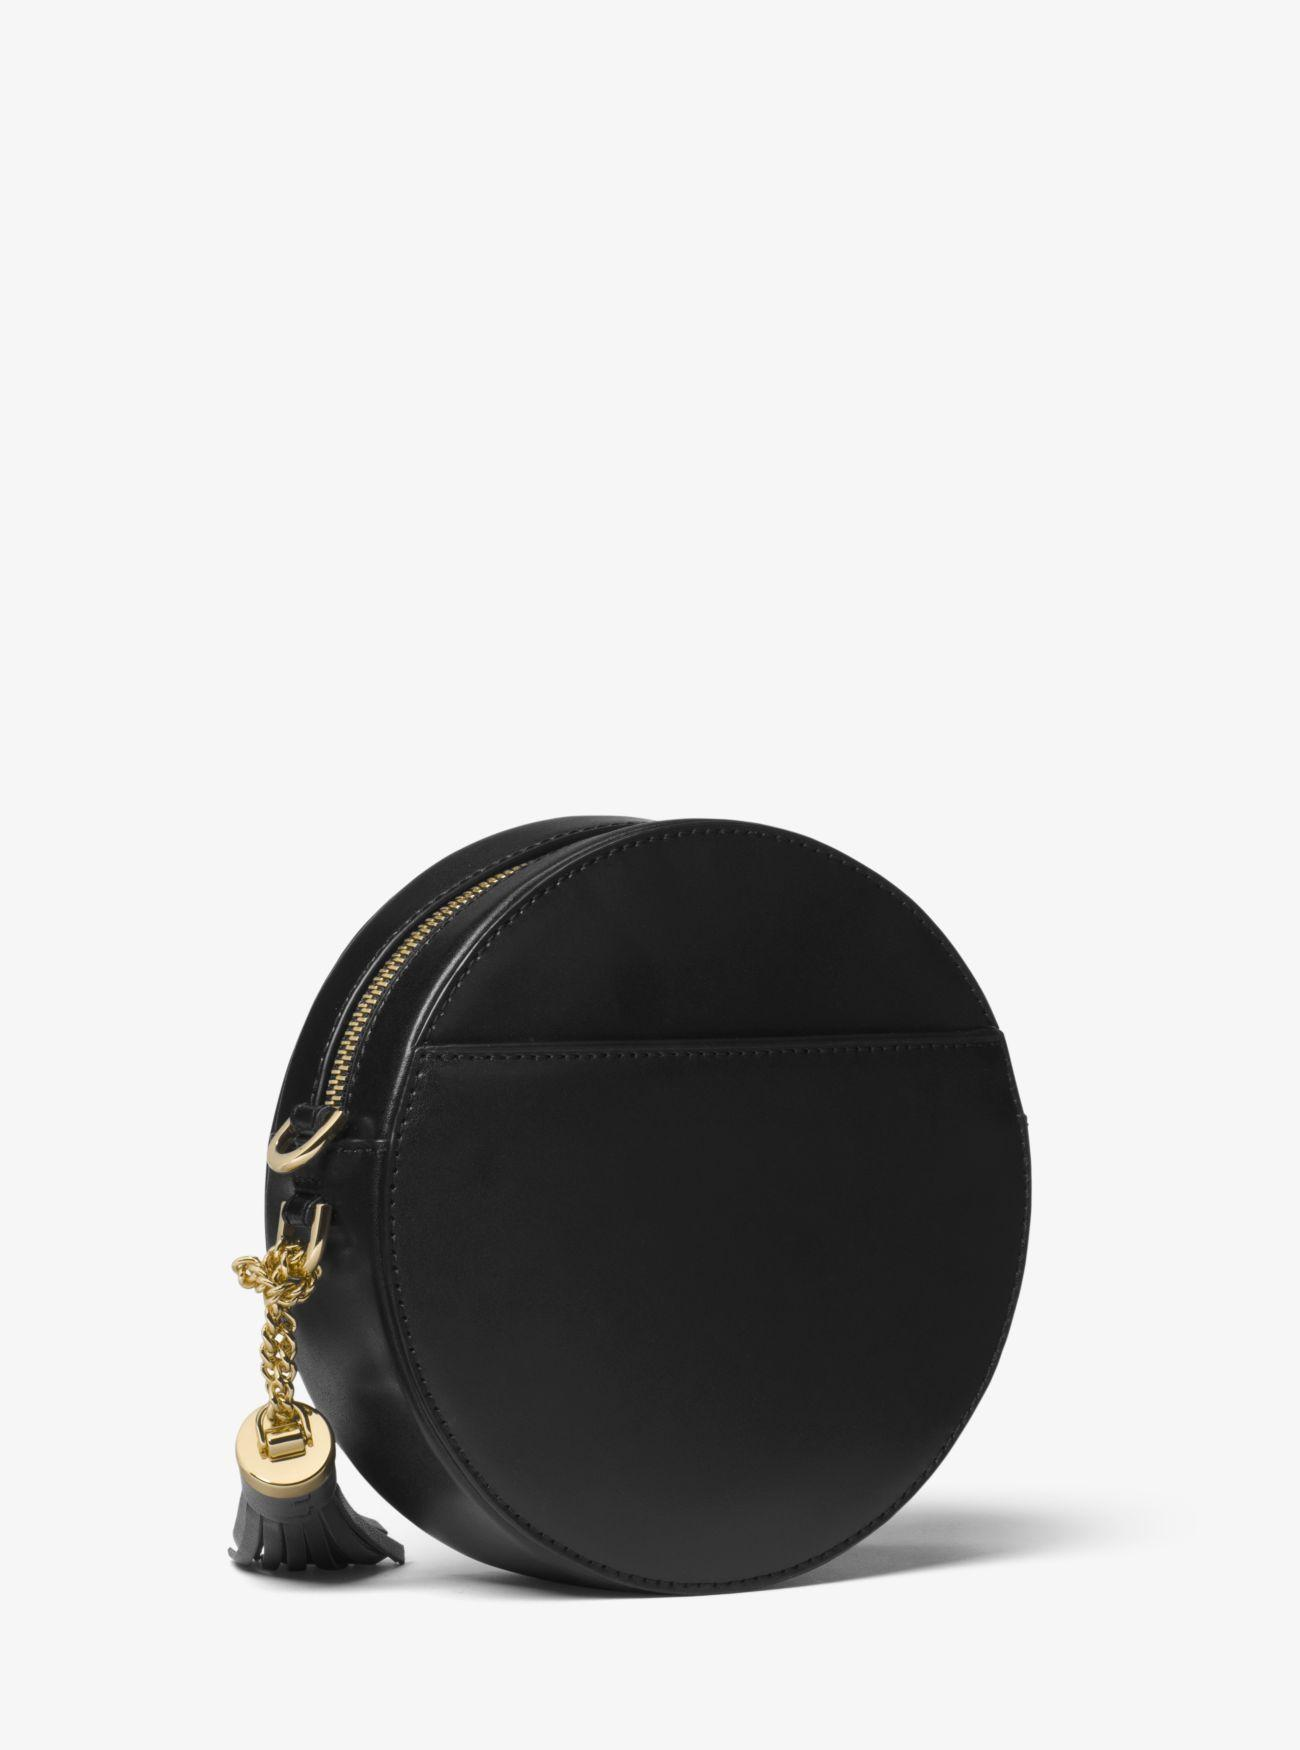 f5d1a9b8afc0 Michael Kors Studded Leather Canteen Crossbody Bag in Black - Lyst